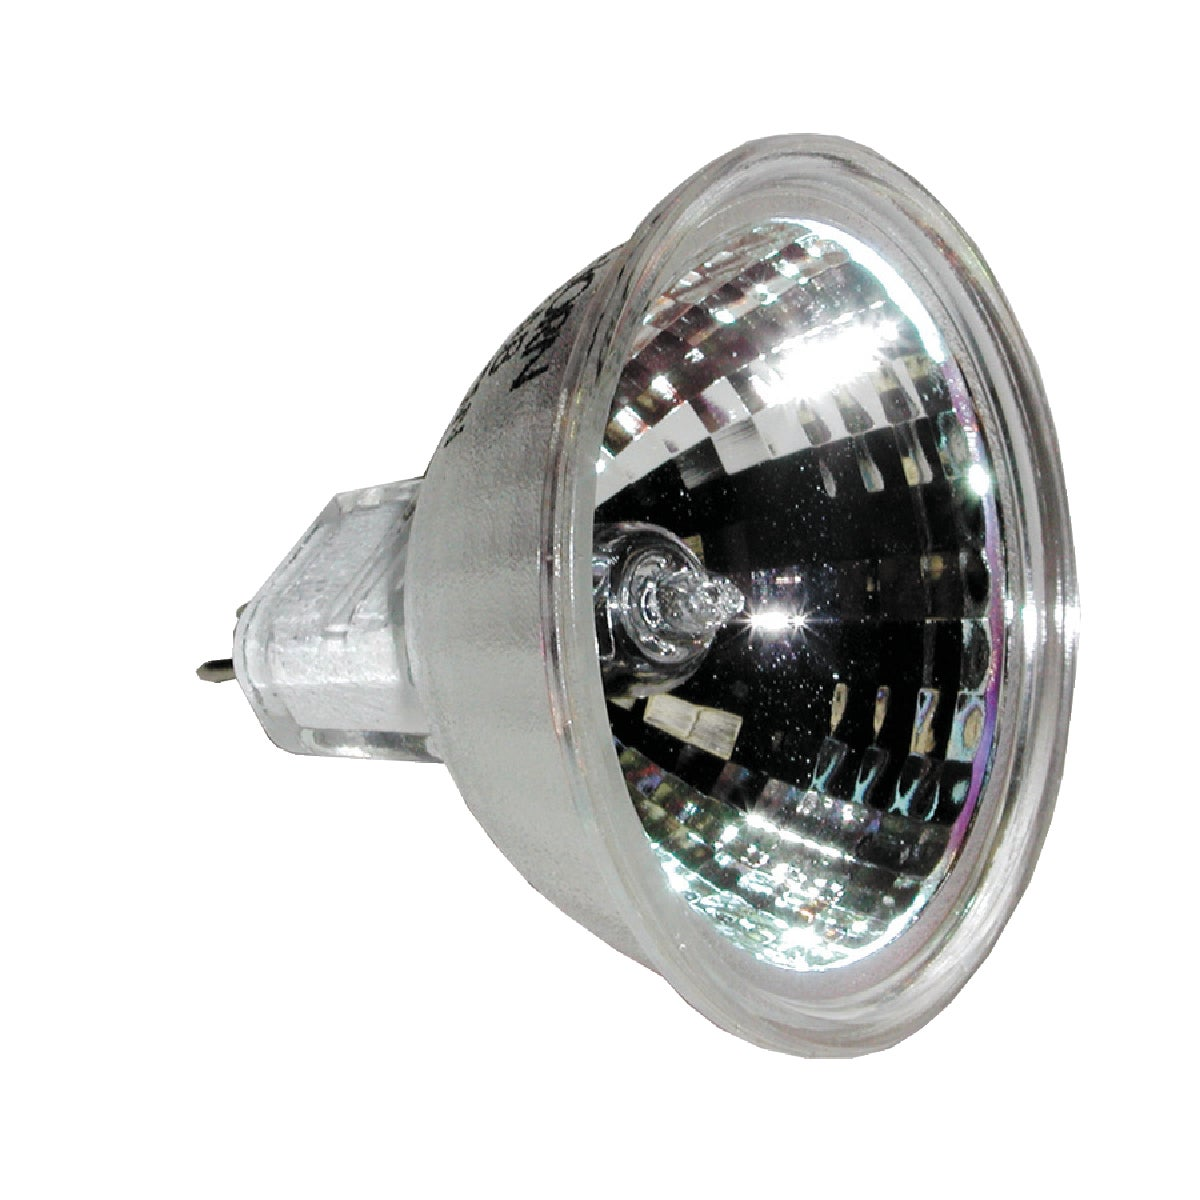 20W MR16 HALOGEN BULB - 95518 by Woods Wire Coleman